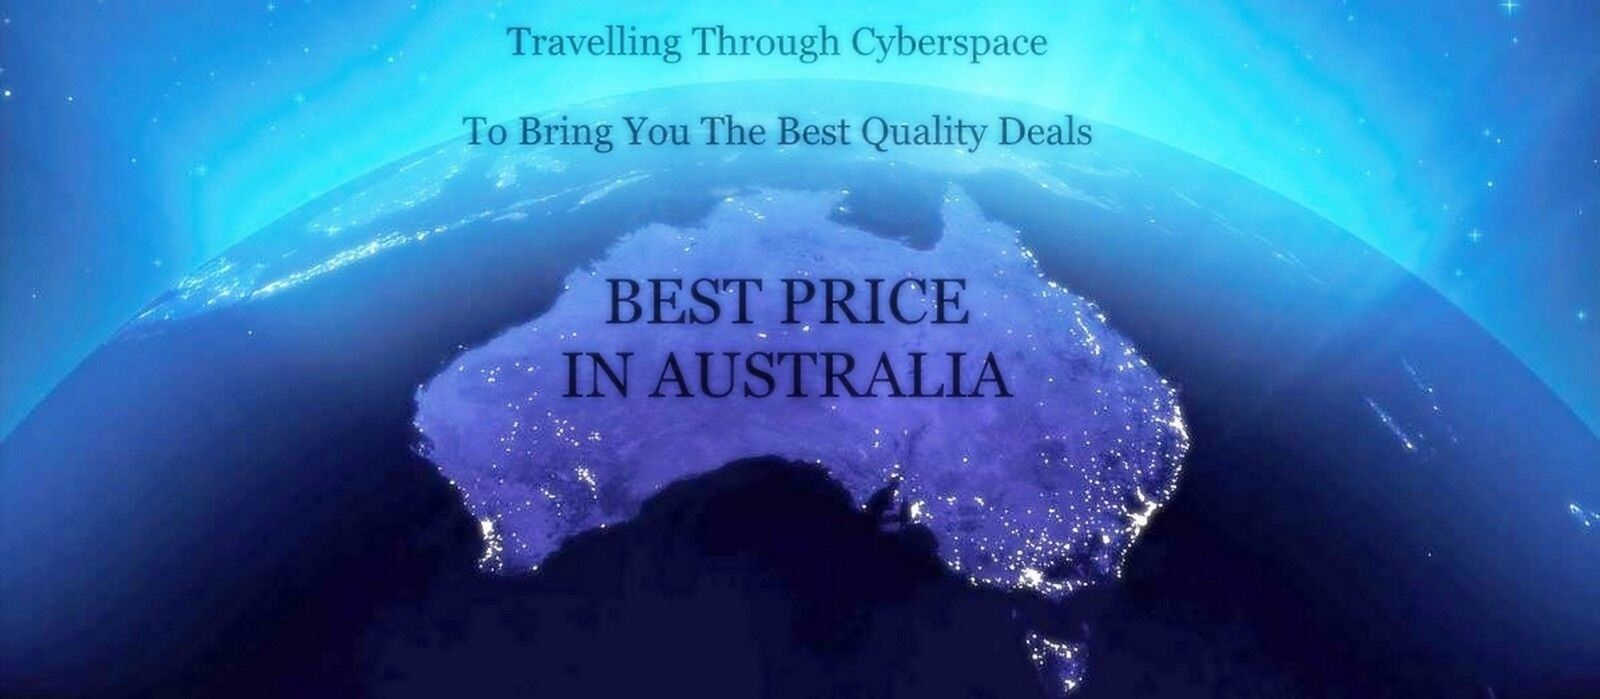 BEST PRICE IN AUSTRALIA BEST-SELLER